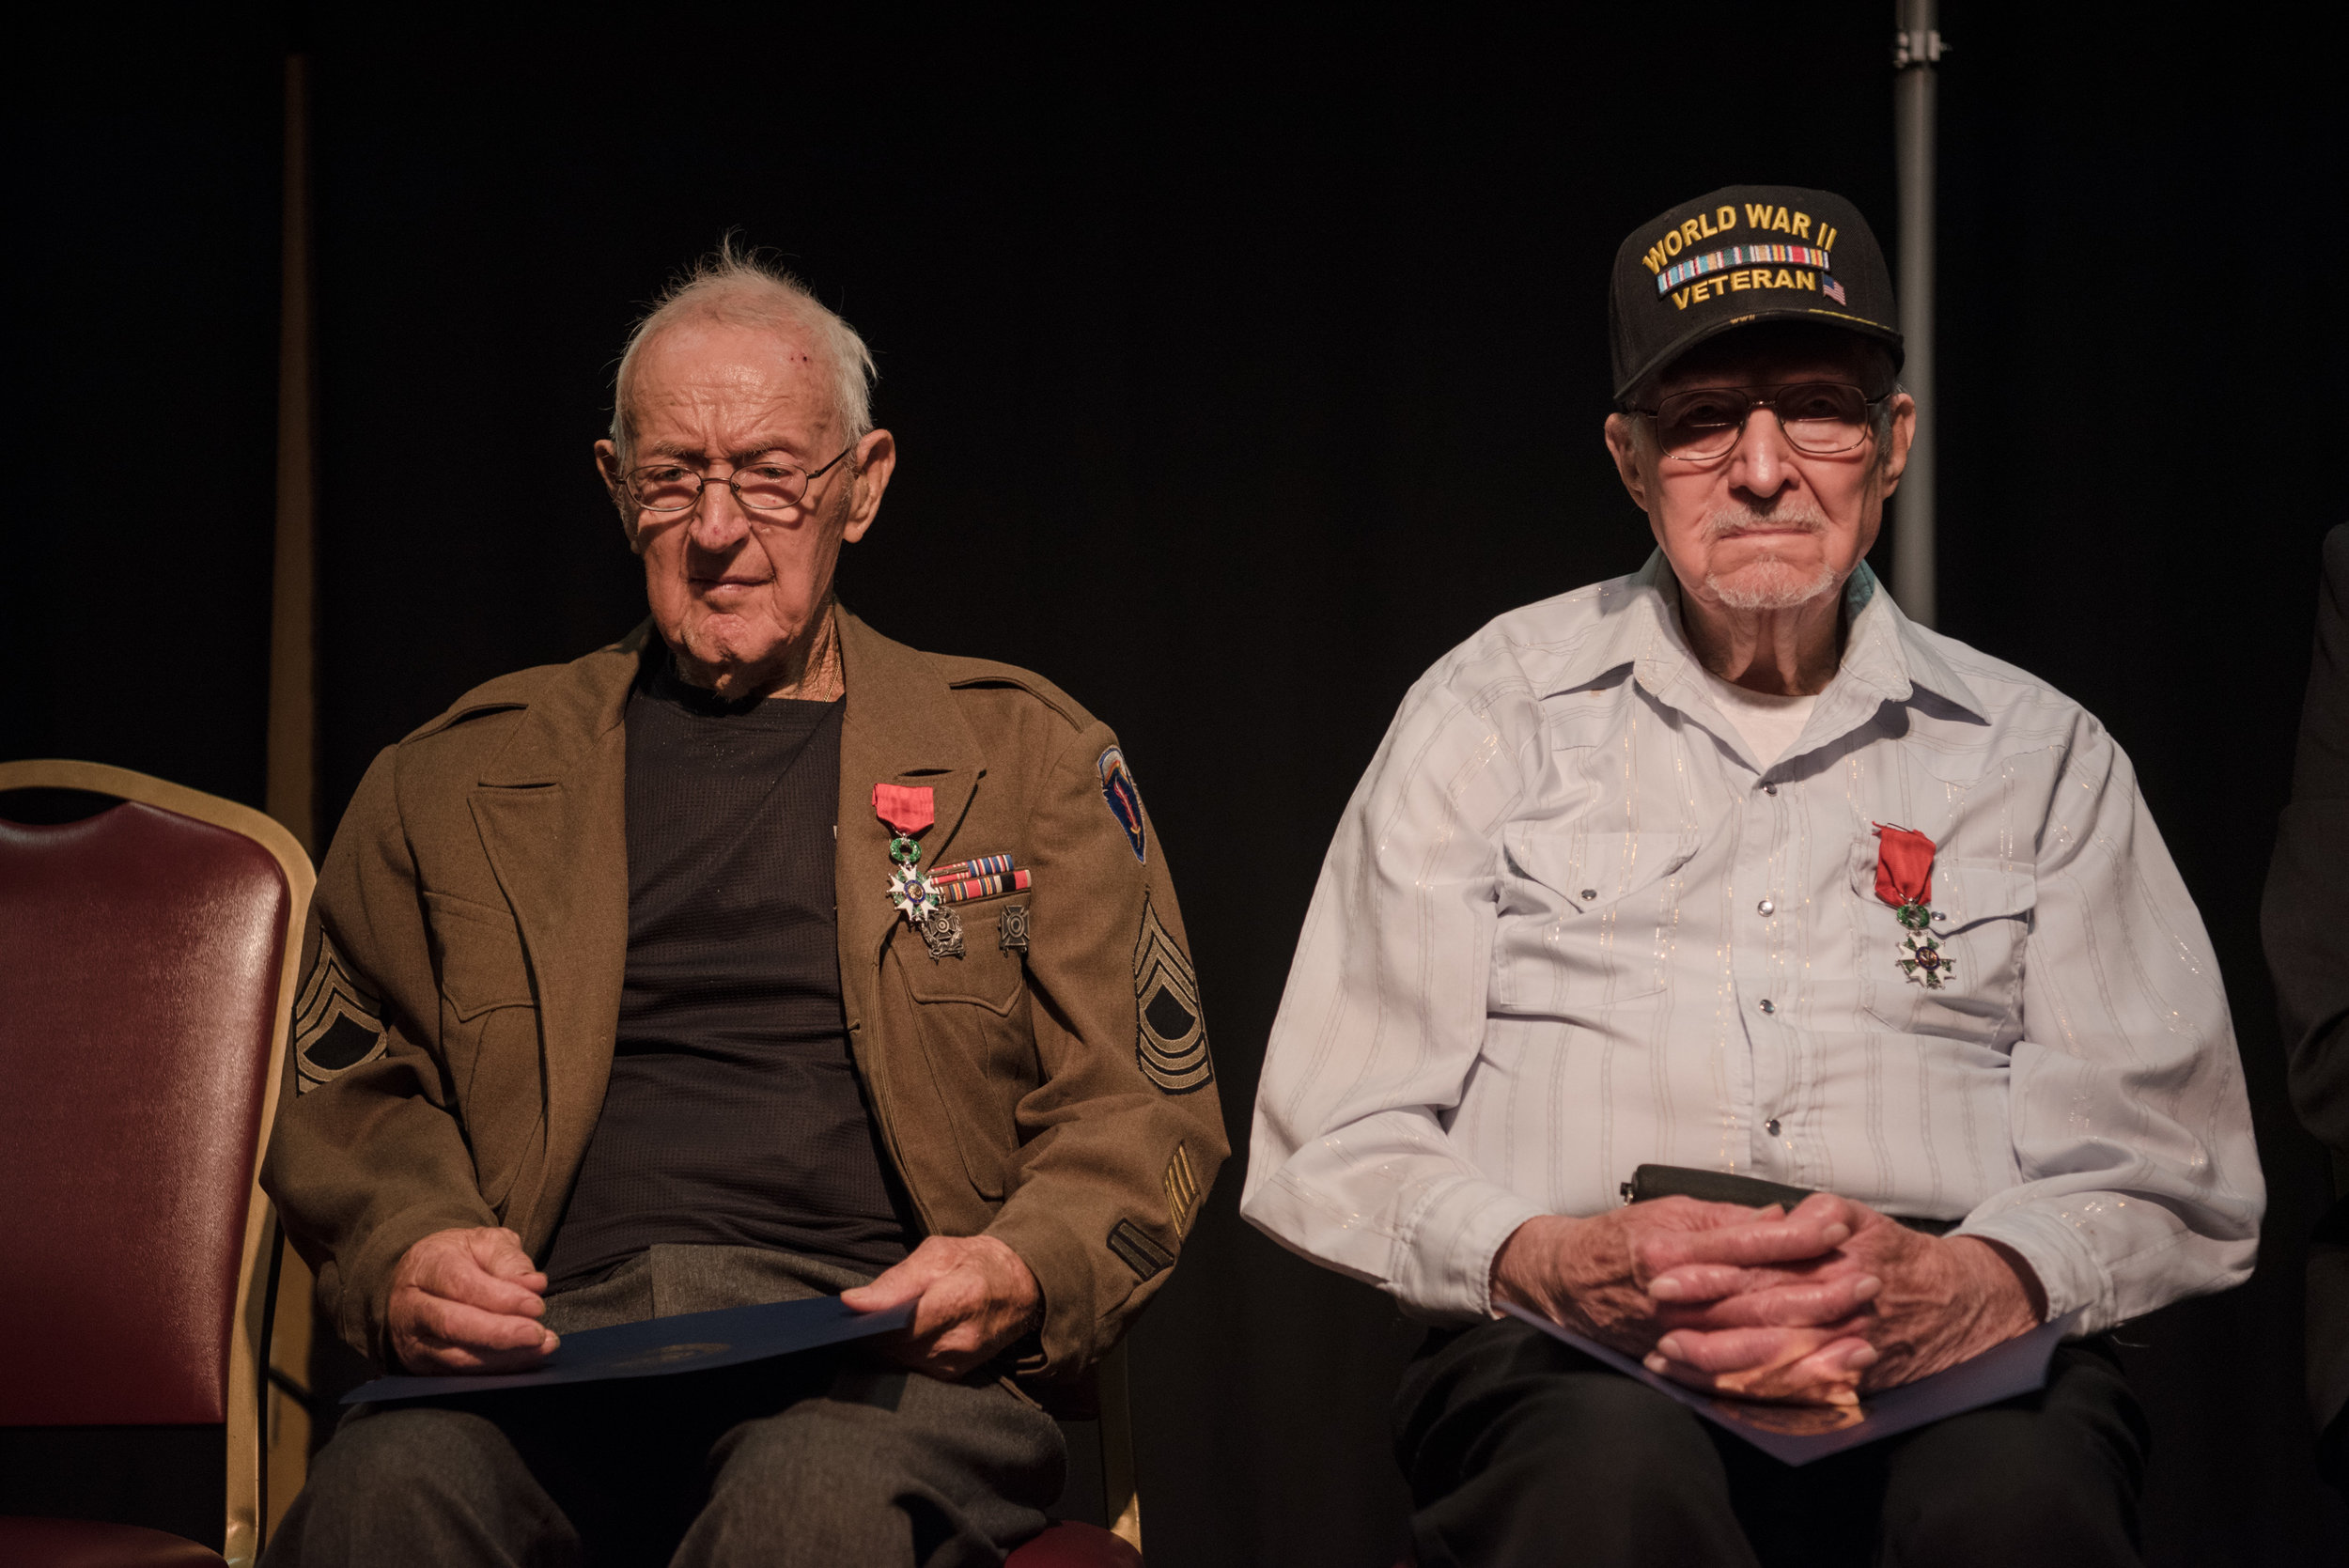 Master Sgt. Lyle Wells and PFC Vernon Fulcher with their Legion D' Honneur medals for their military service during World War II at El Cortez hotel-casino on Saturday, July 22, 2017, in Las Vegas. Morgan Lieberman Las Vegas Review-Journal